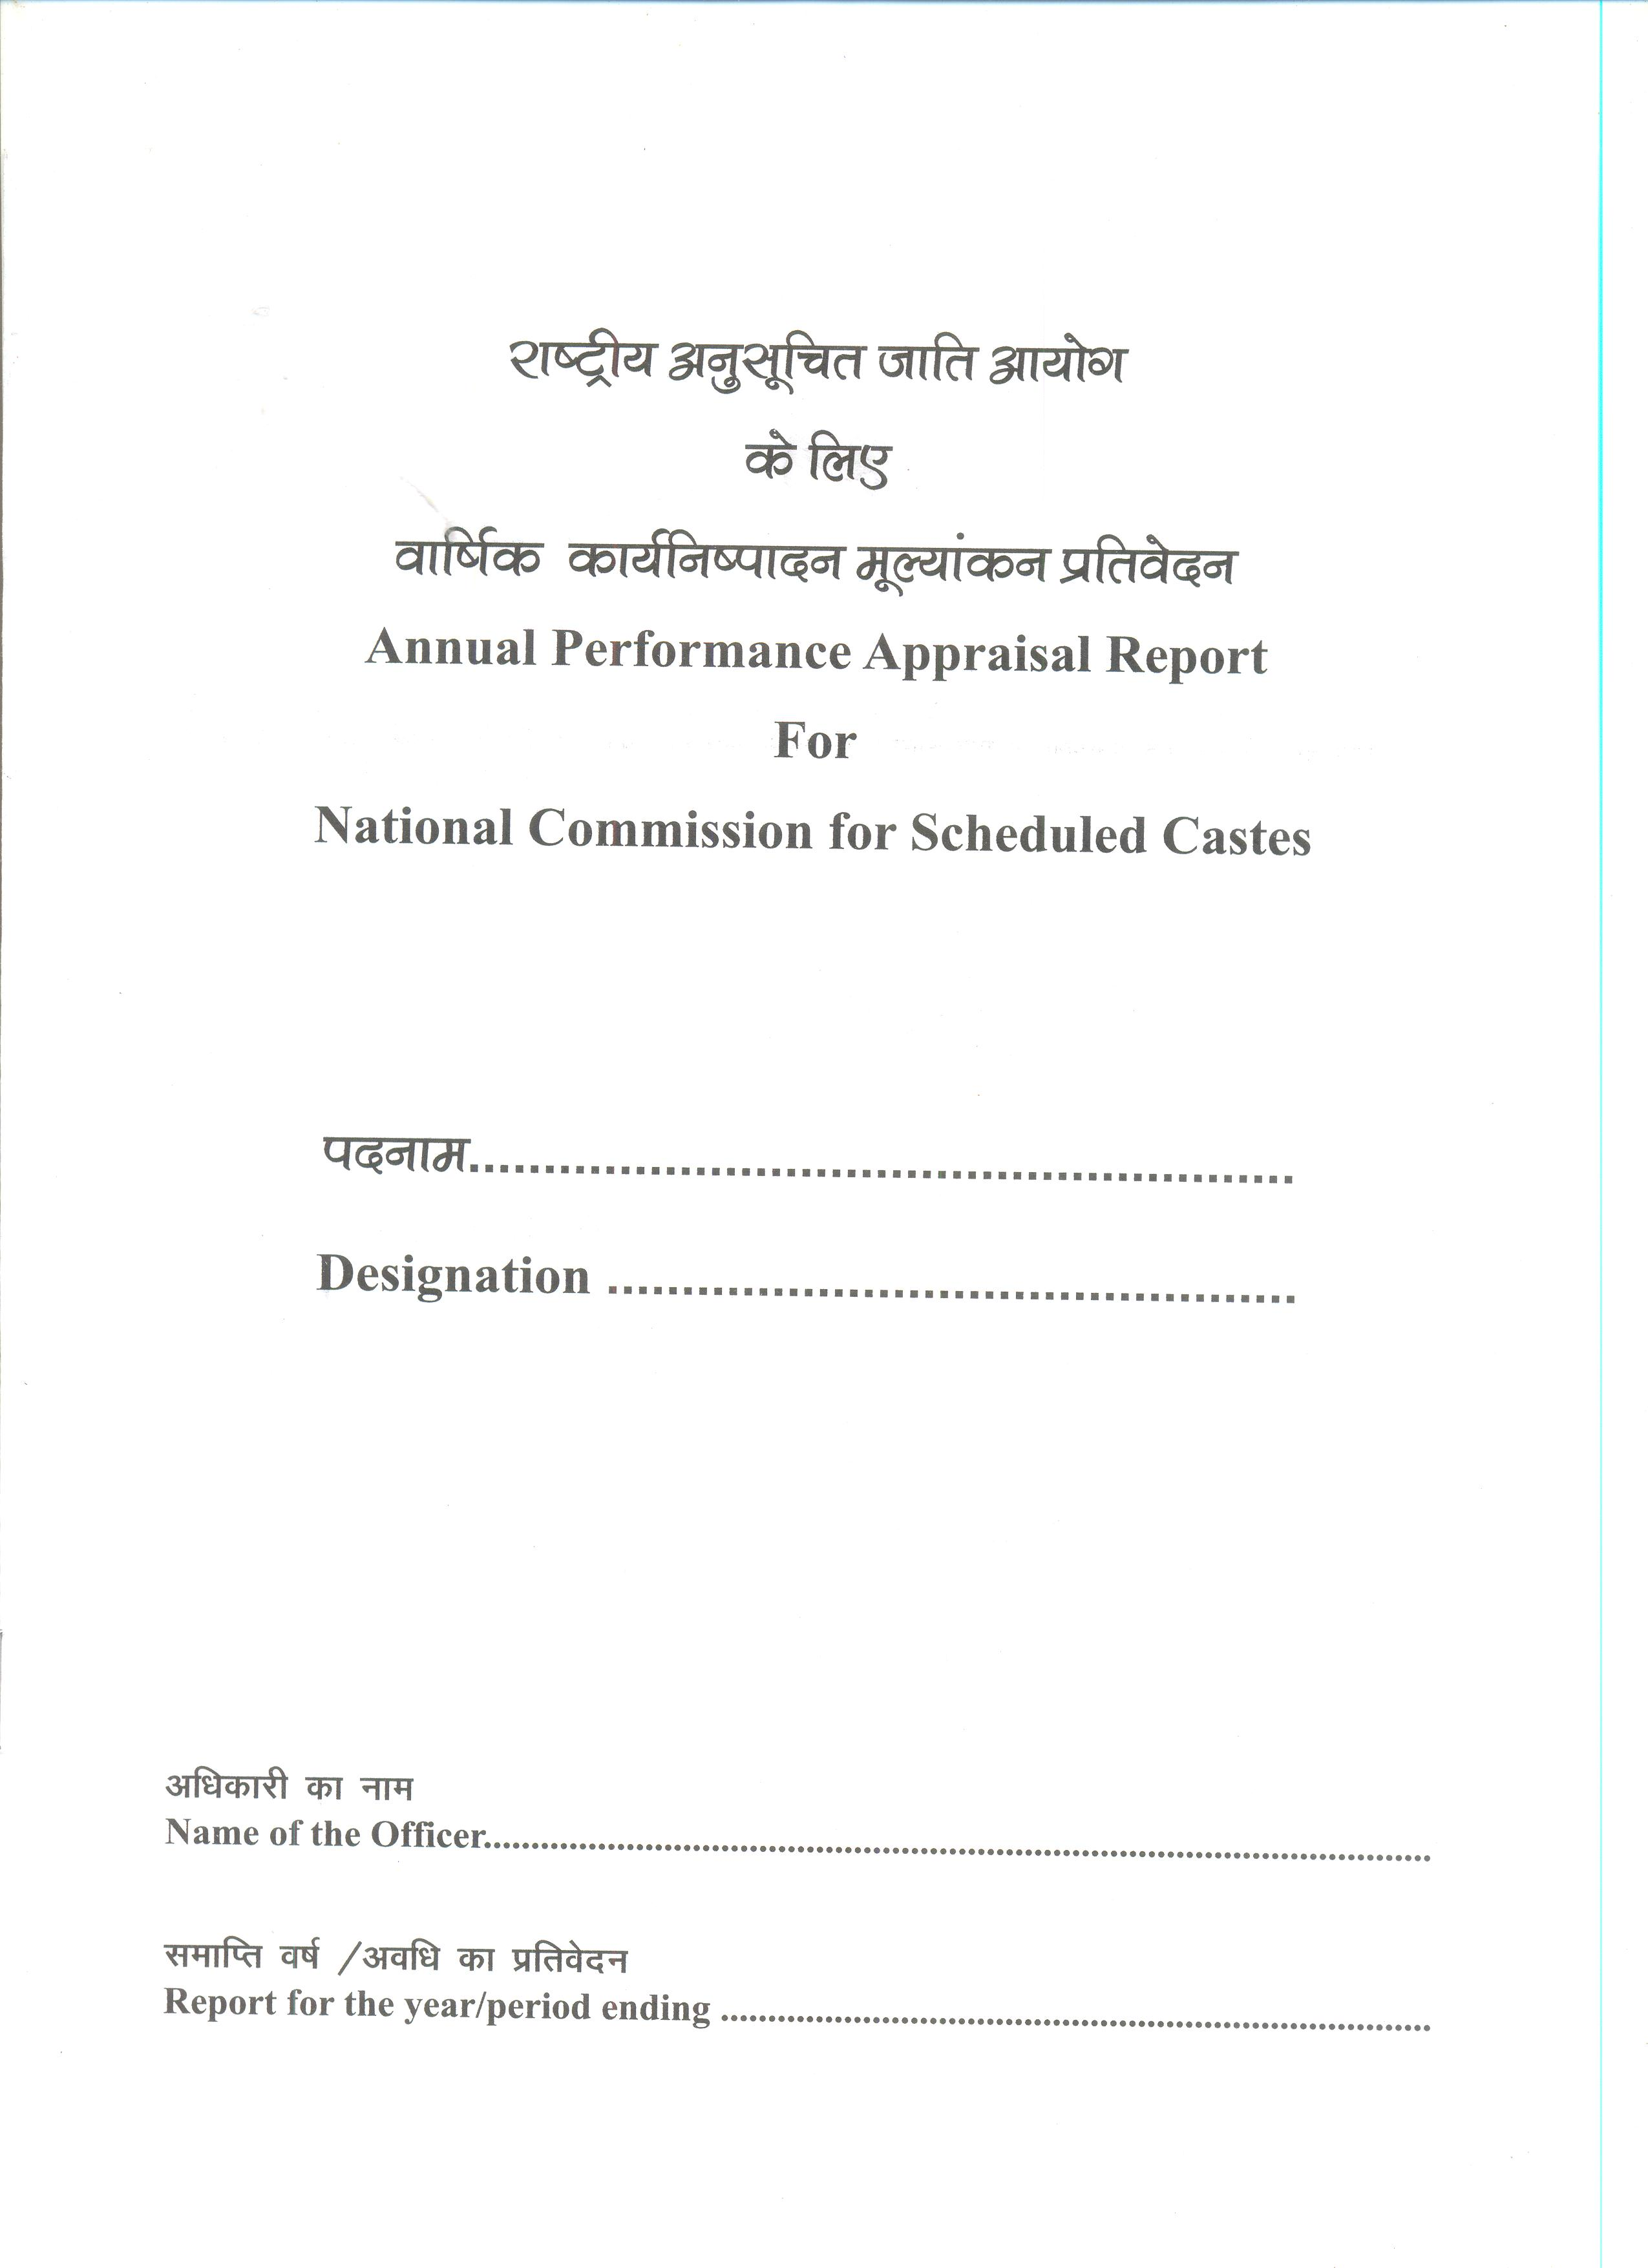 Forms National Commission for Scheduled Castes – Application for Leave Form